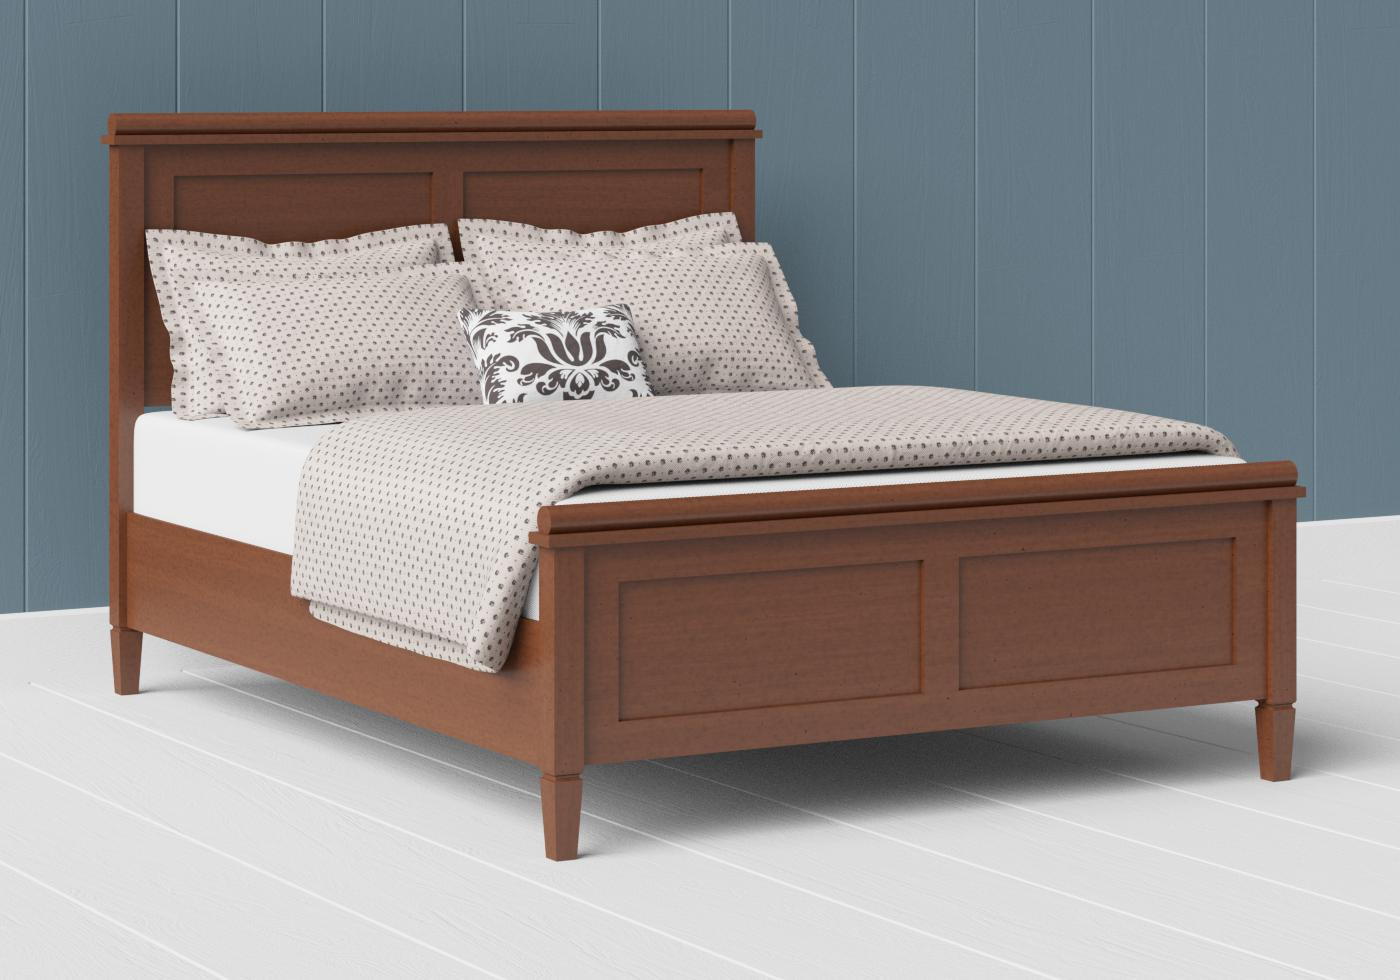 Nocturne low footend wood bed in a dark cherry finish